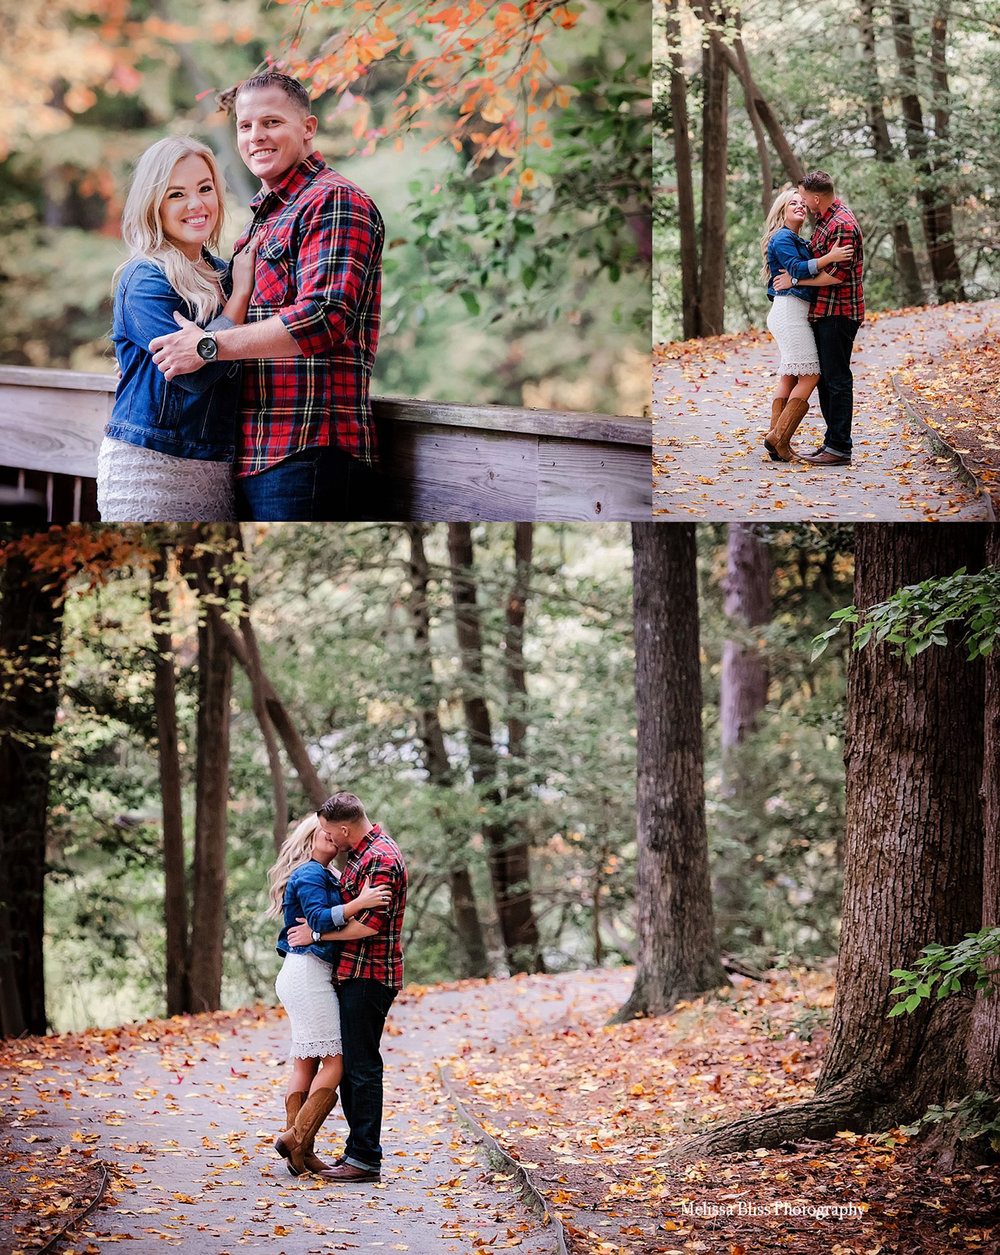 gorgeous-rustic-engagment-photos-wooded-noland-trail-norfolk-va-beach-wedding-photographer-melissa-bliss-photography.jpg